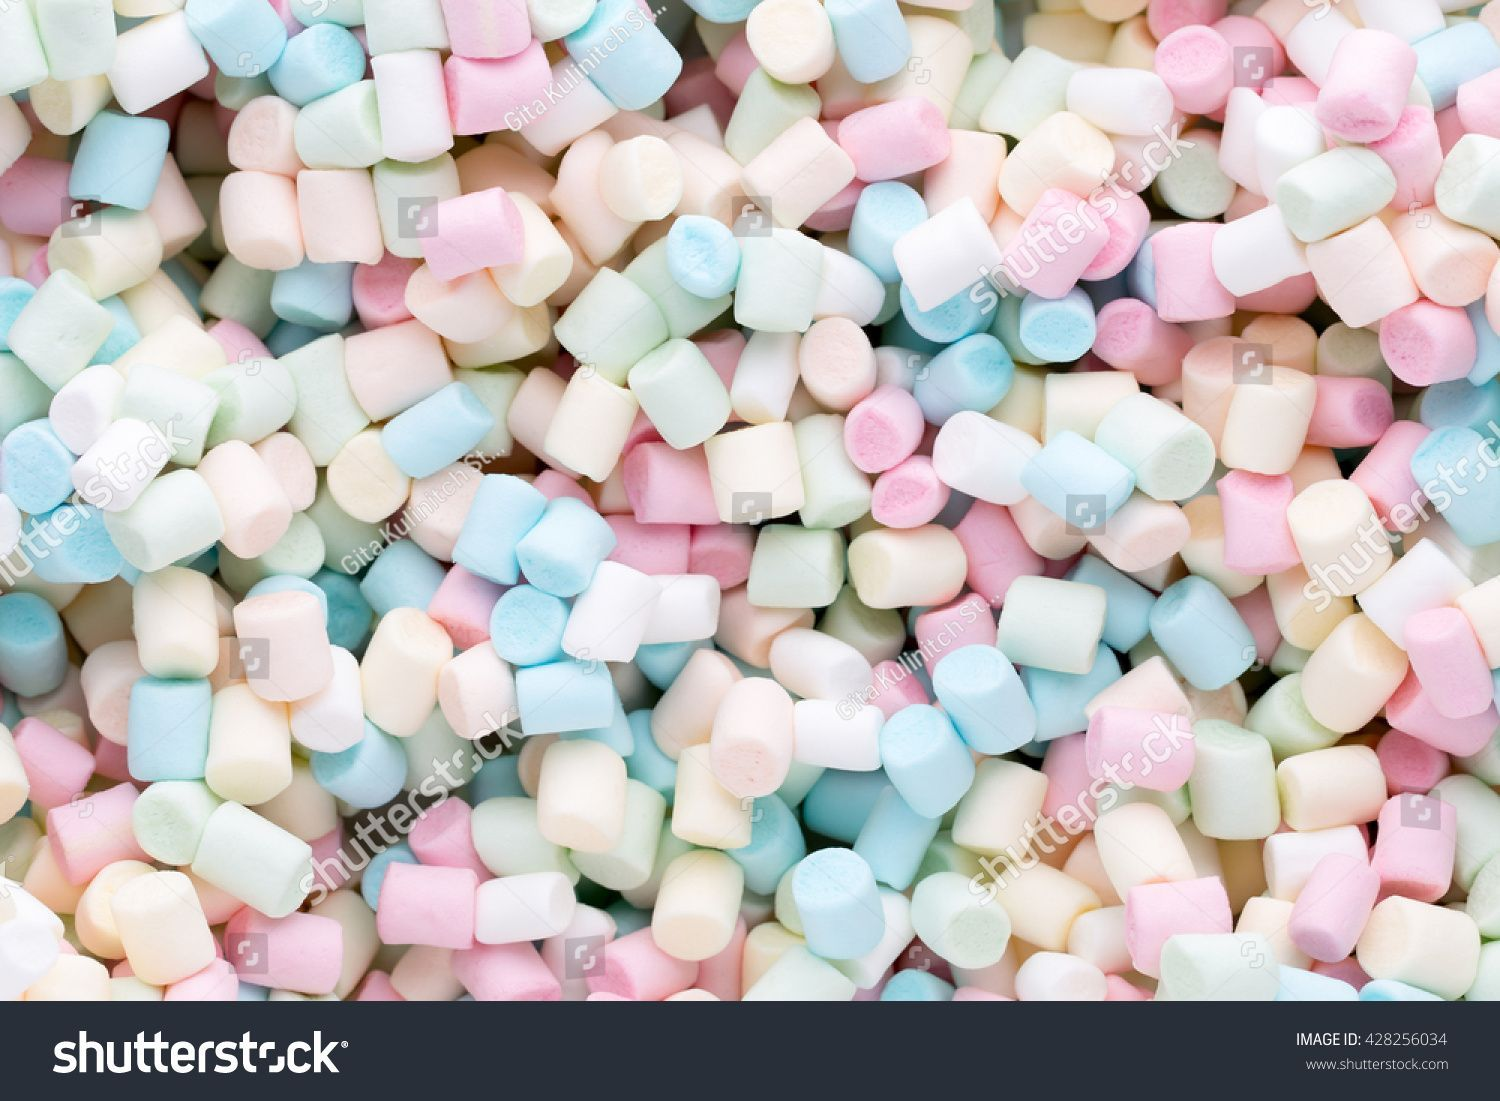 Marshmallows Background Texture Colorful Mini Marshmallows Stock Photo Edit Now 428256034 Marshmallows Background or texture of colorful mini marshmallows